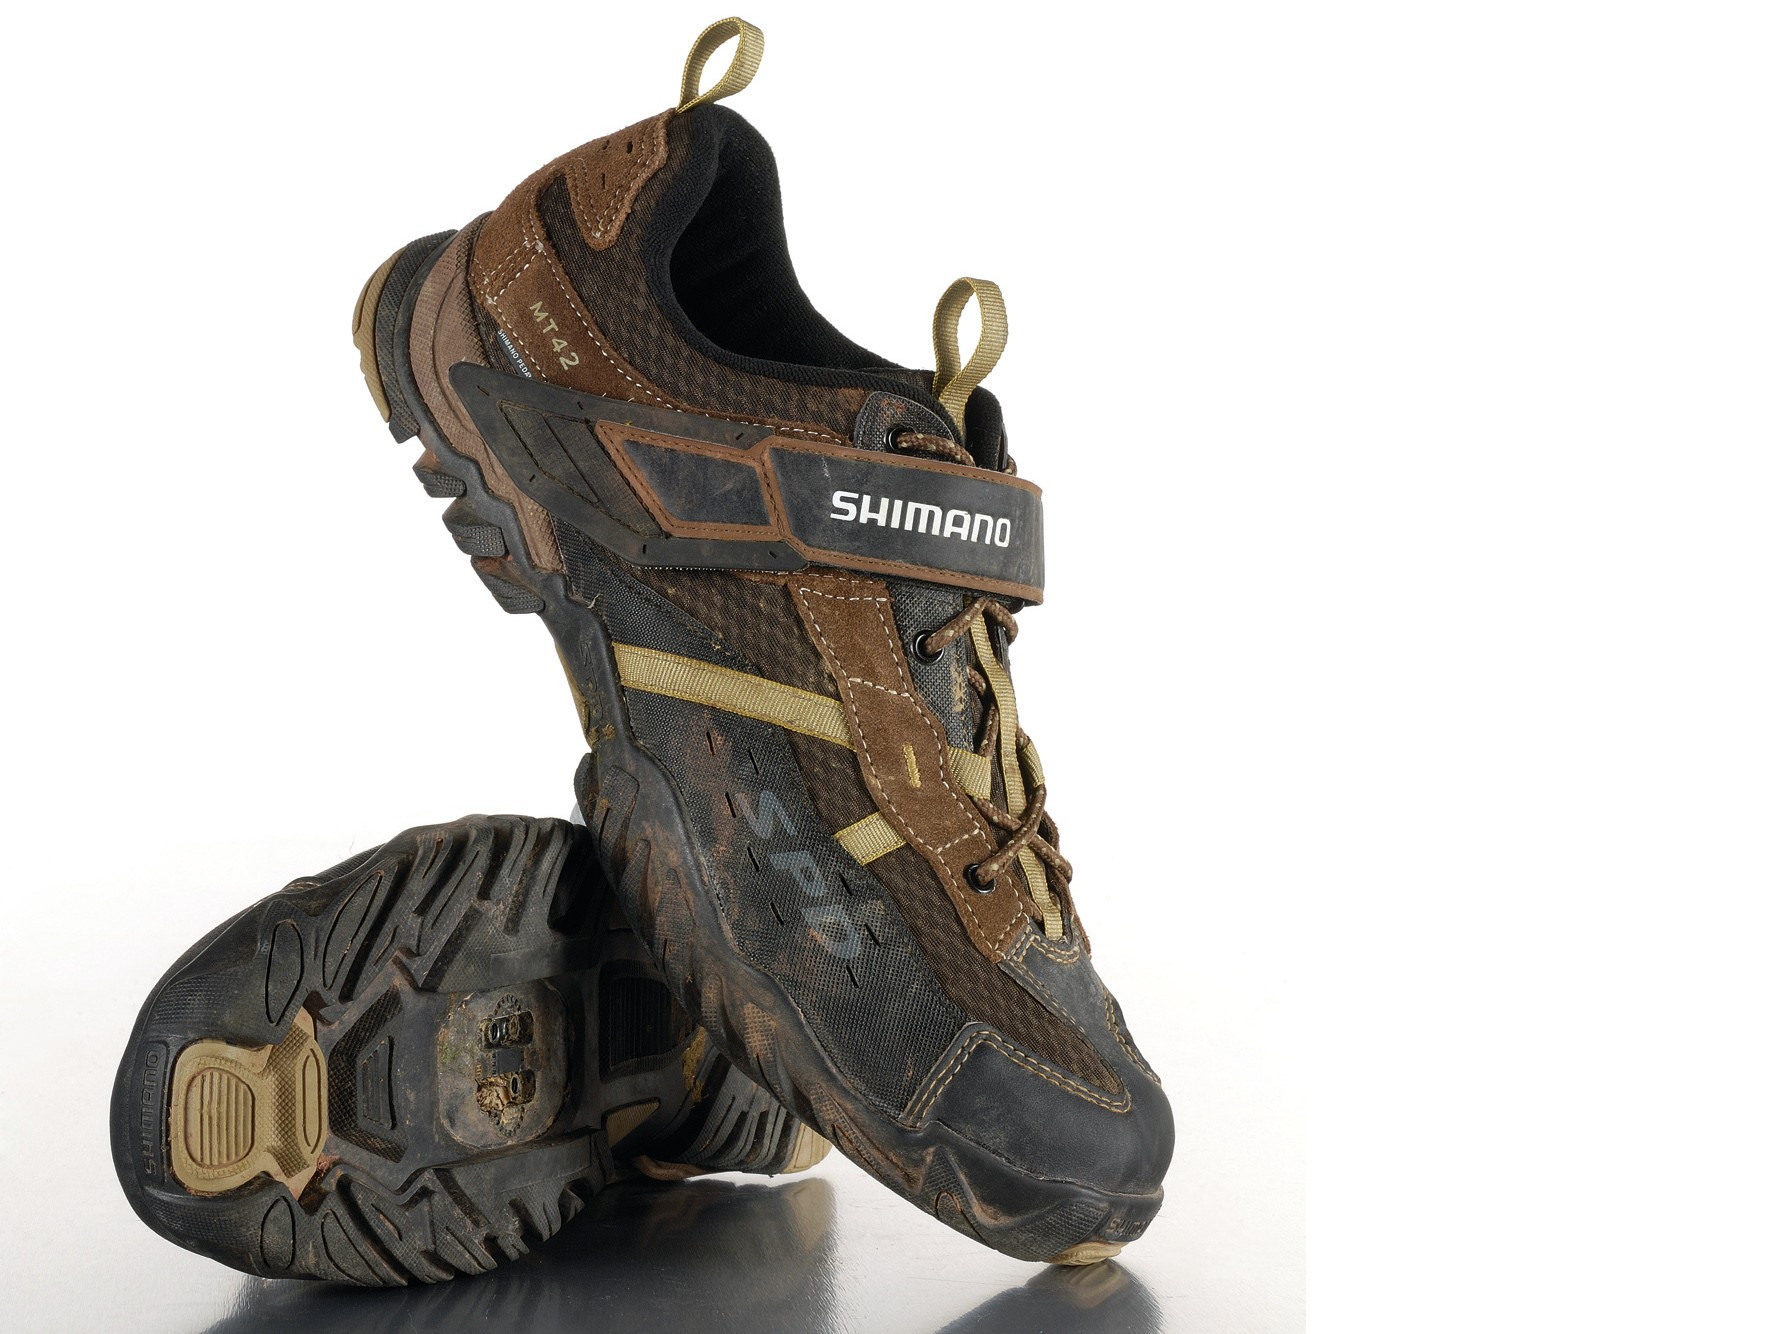 Shimano MT42 shoes